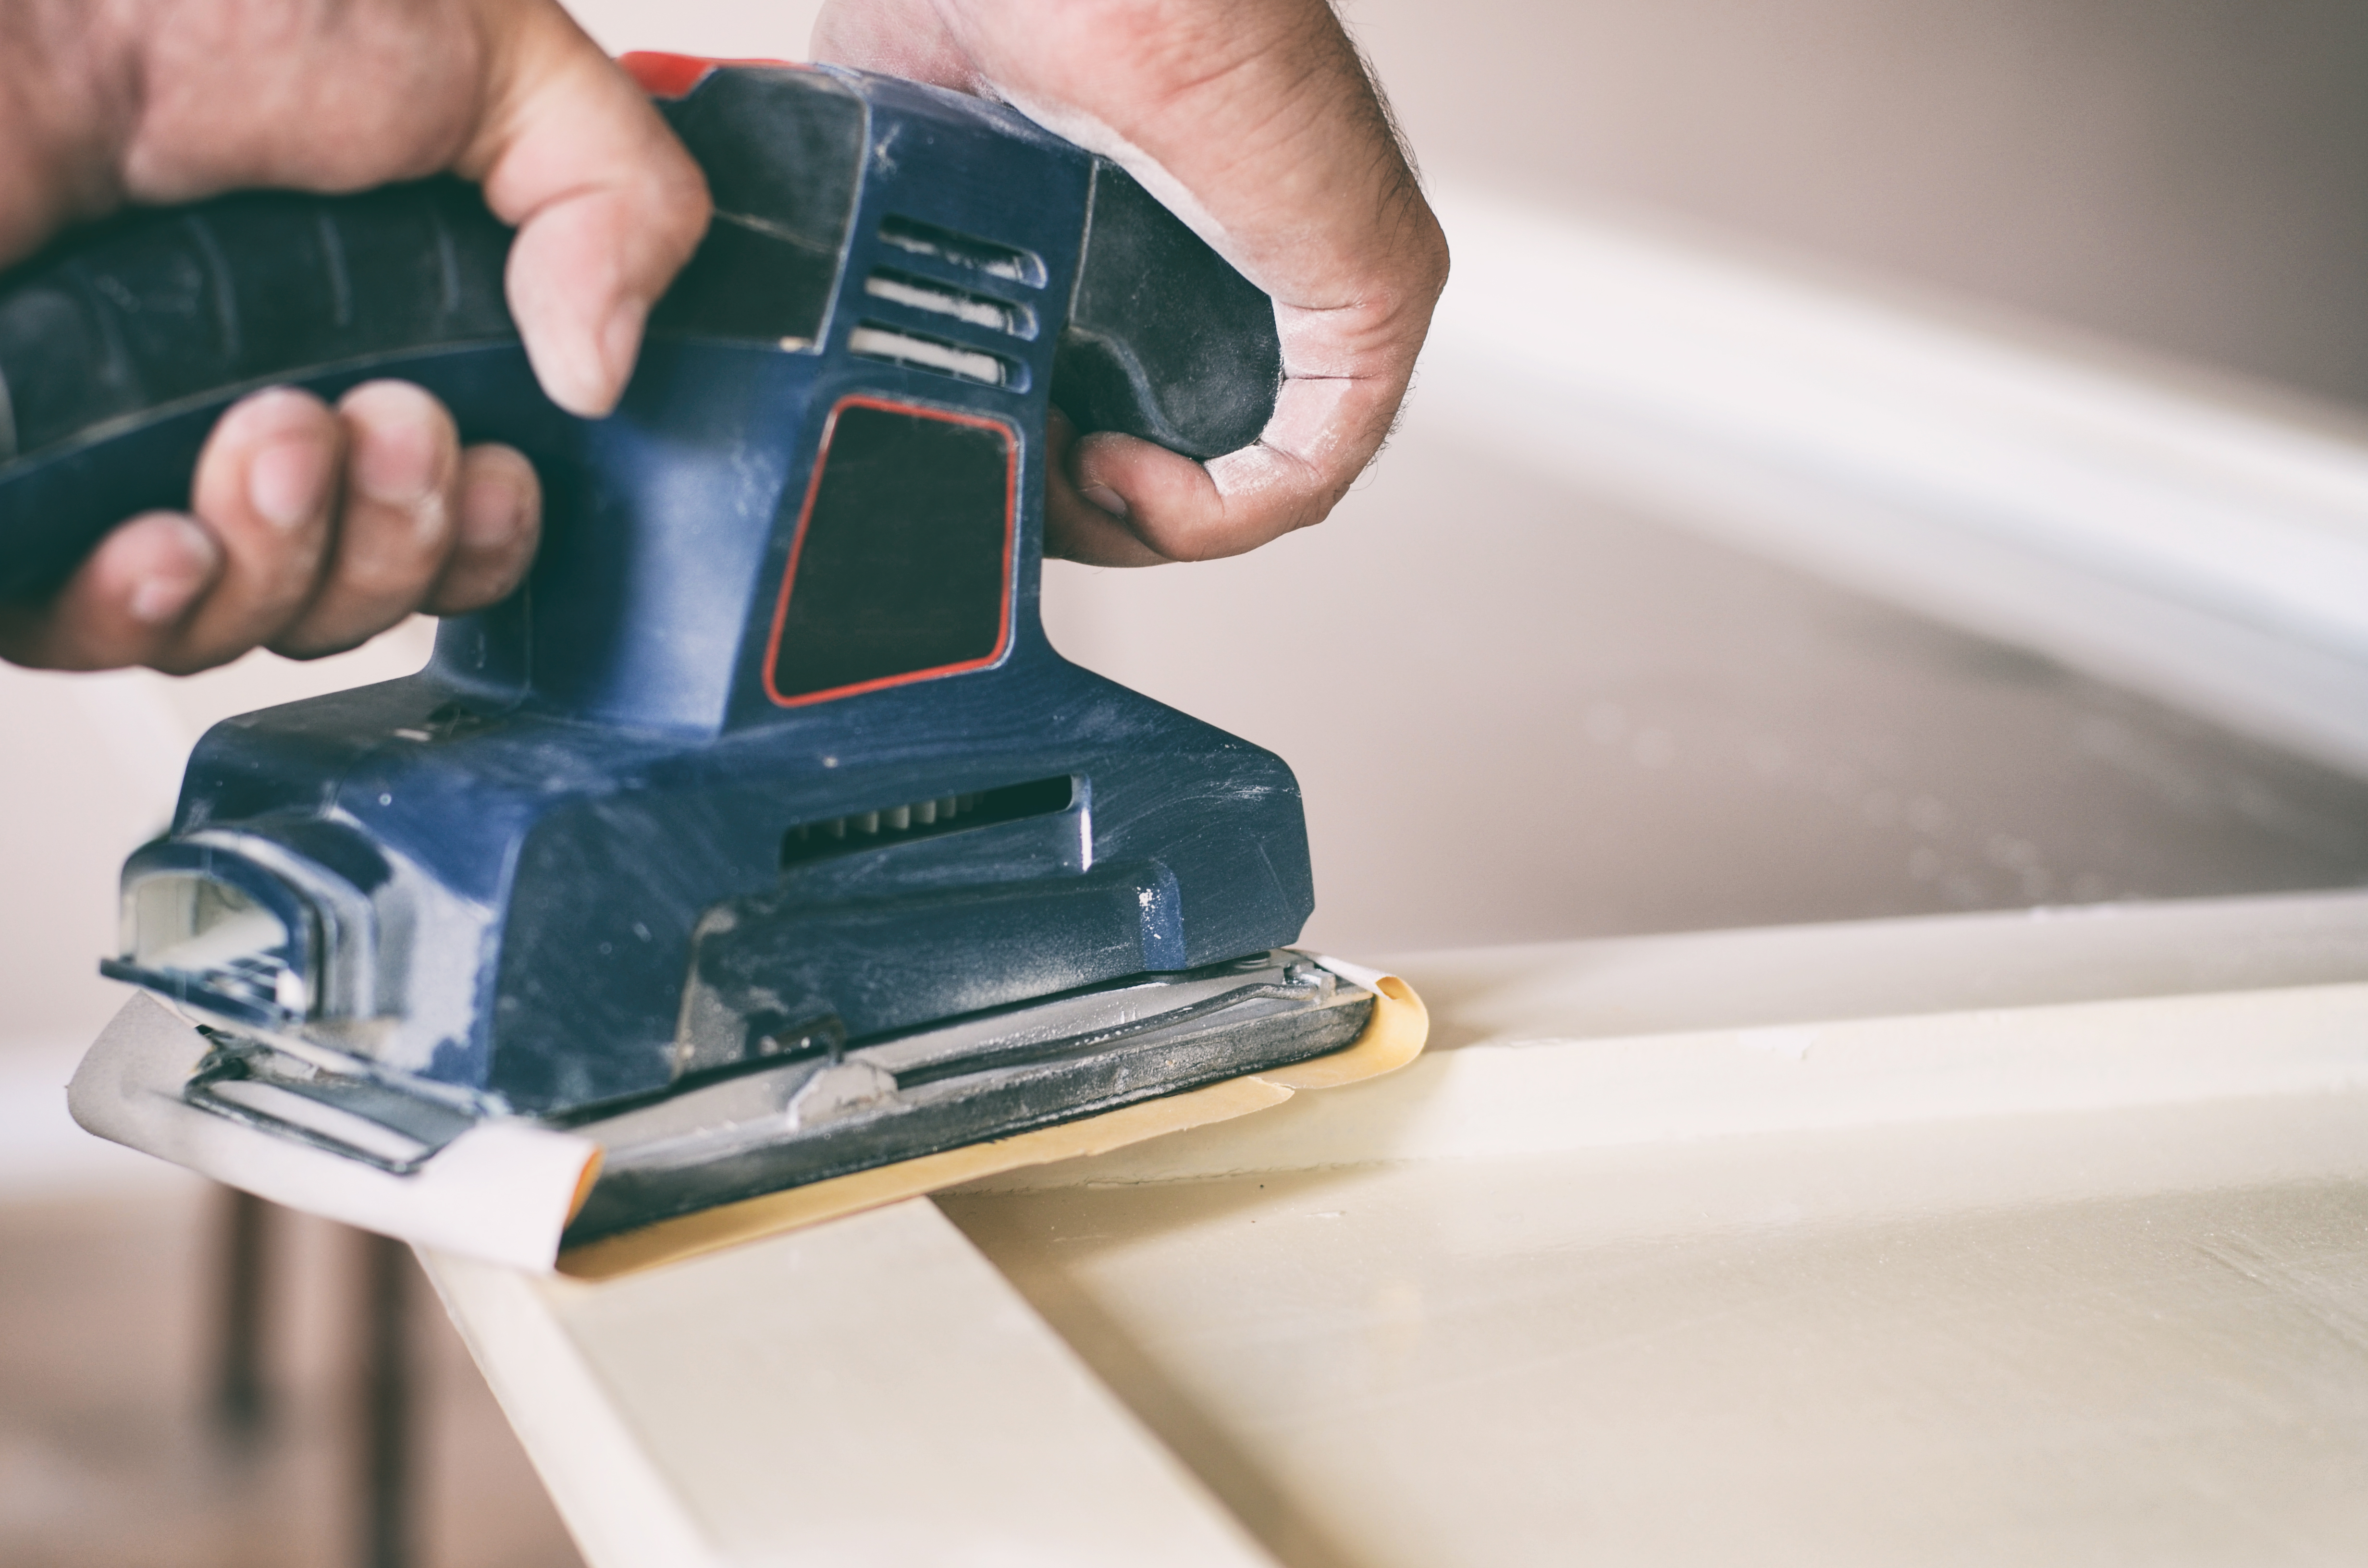 Tips On Drywall Cleaning After Sanding Home Guides Sf Gate